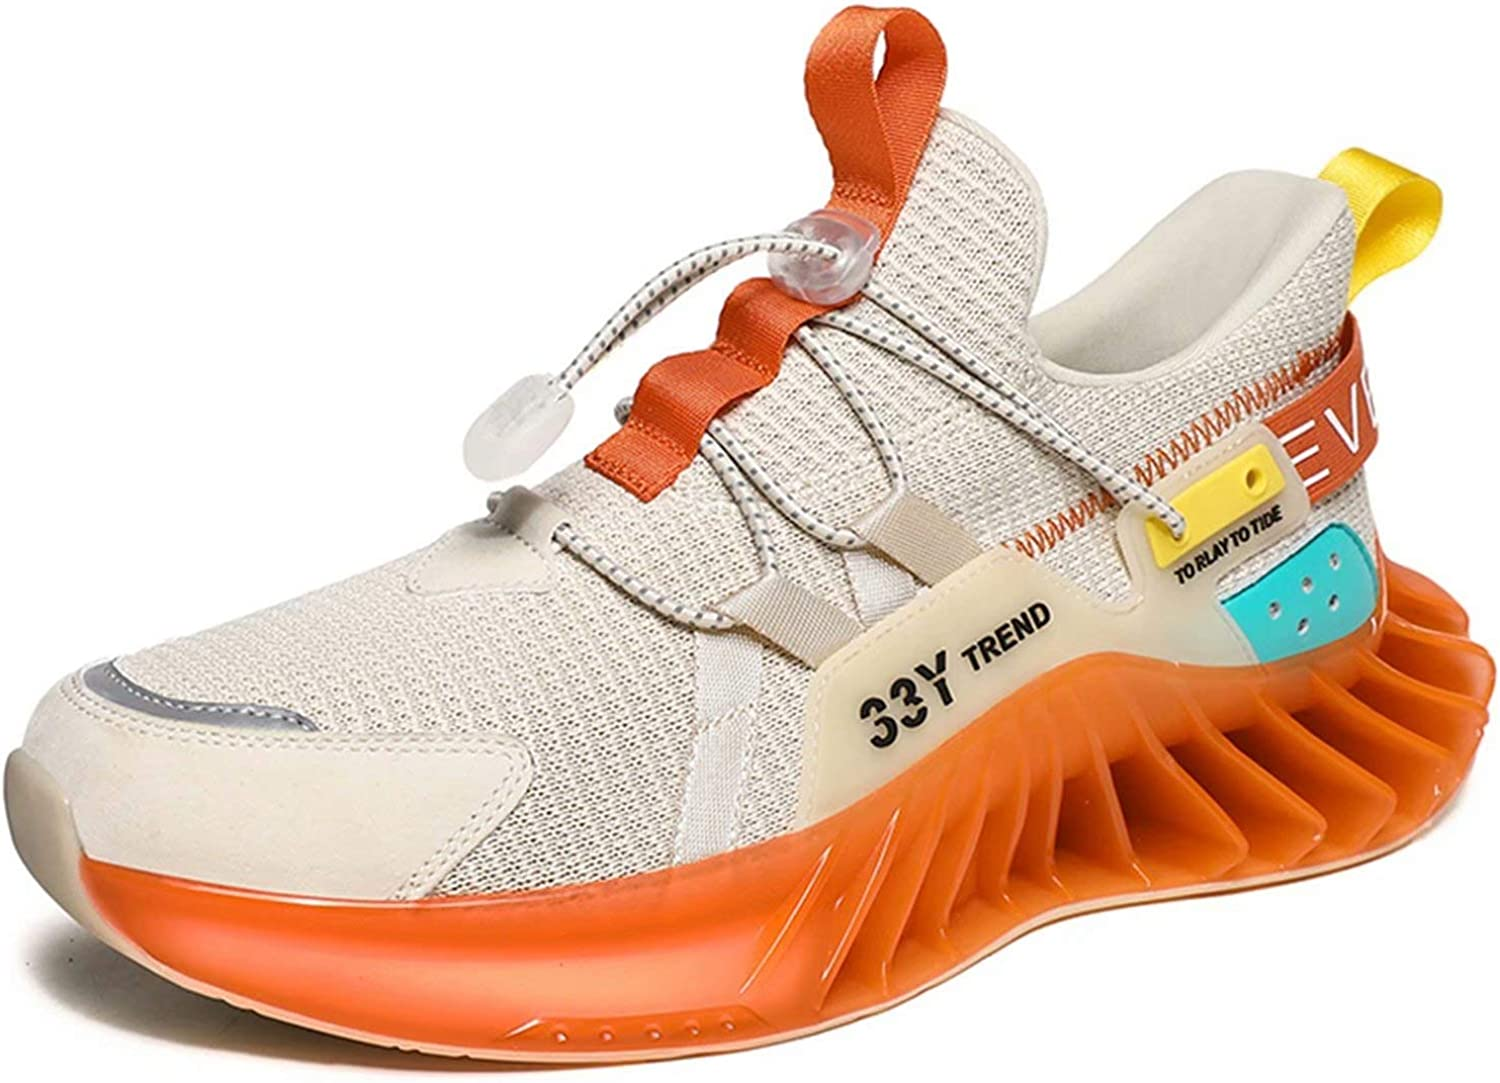 Men's Fashion Oakland Mall Sneakers Running Shoes Athle Max 48% OFF Tennis Non Slip